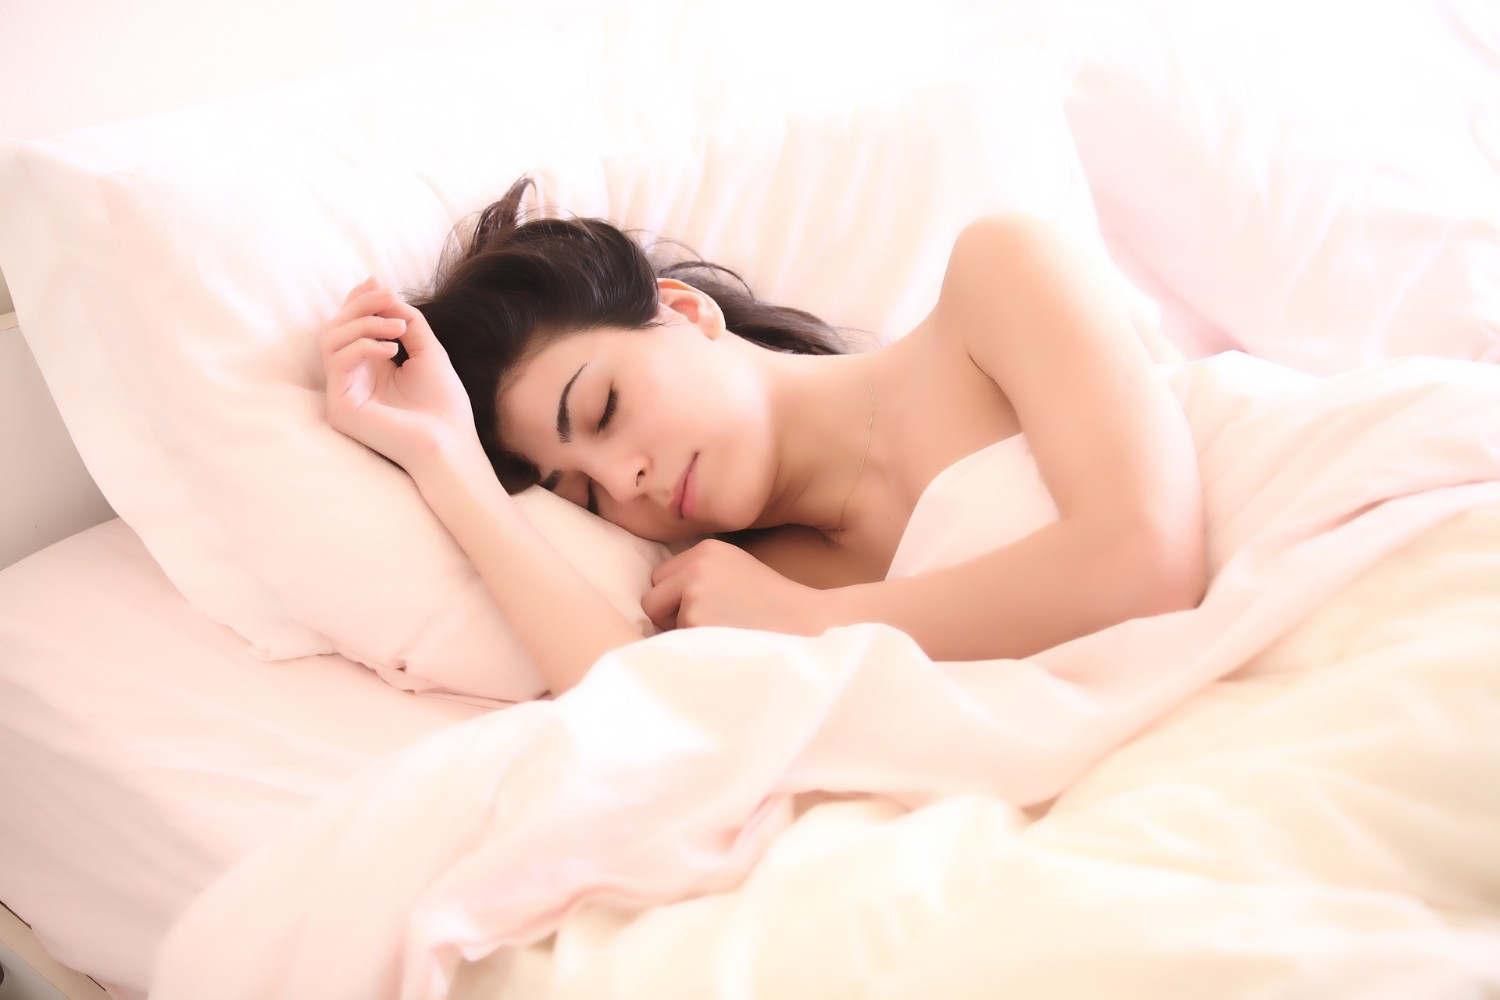 Woman sleeping on side in a bed